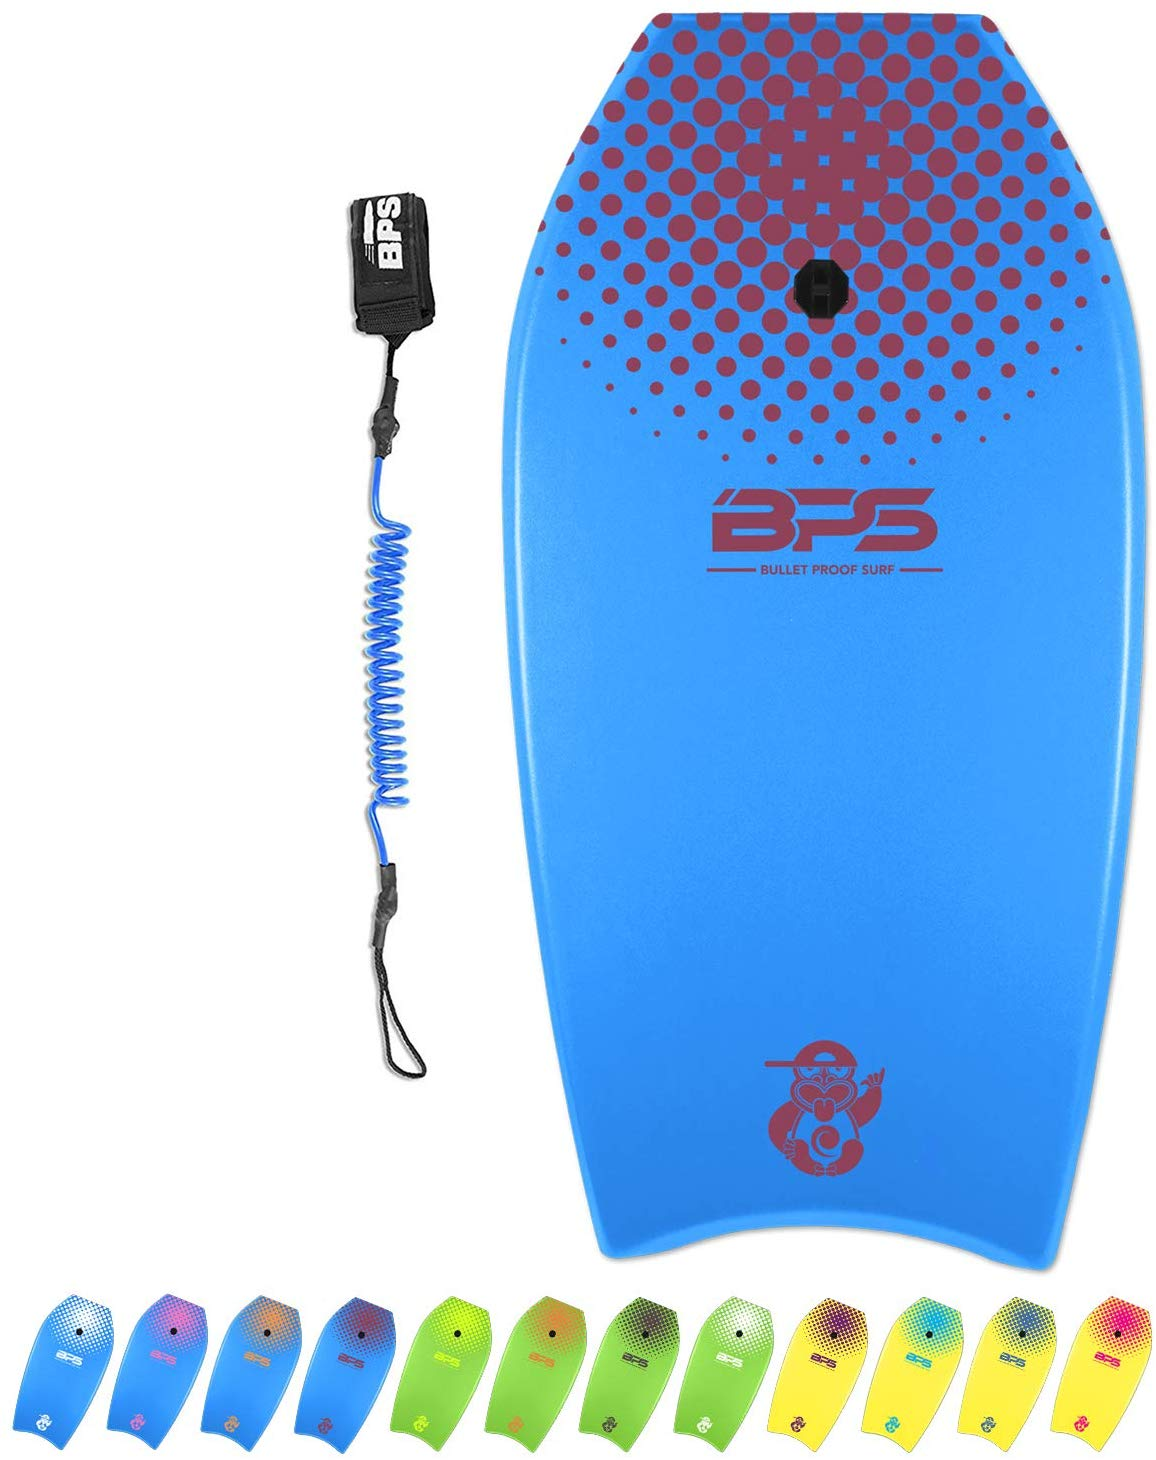 BPS 'Green Machine' Bodyboard with Wrist Leash - Strong TPU Wrist Leash and Constructed with HPDE Slick Bottom